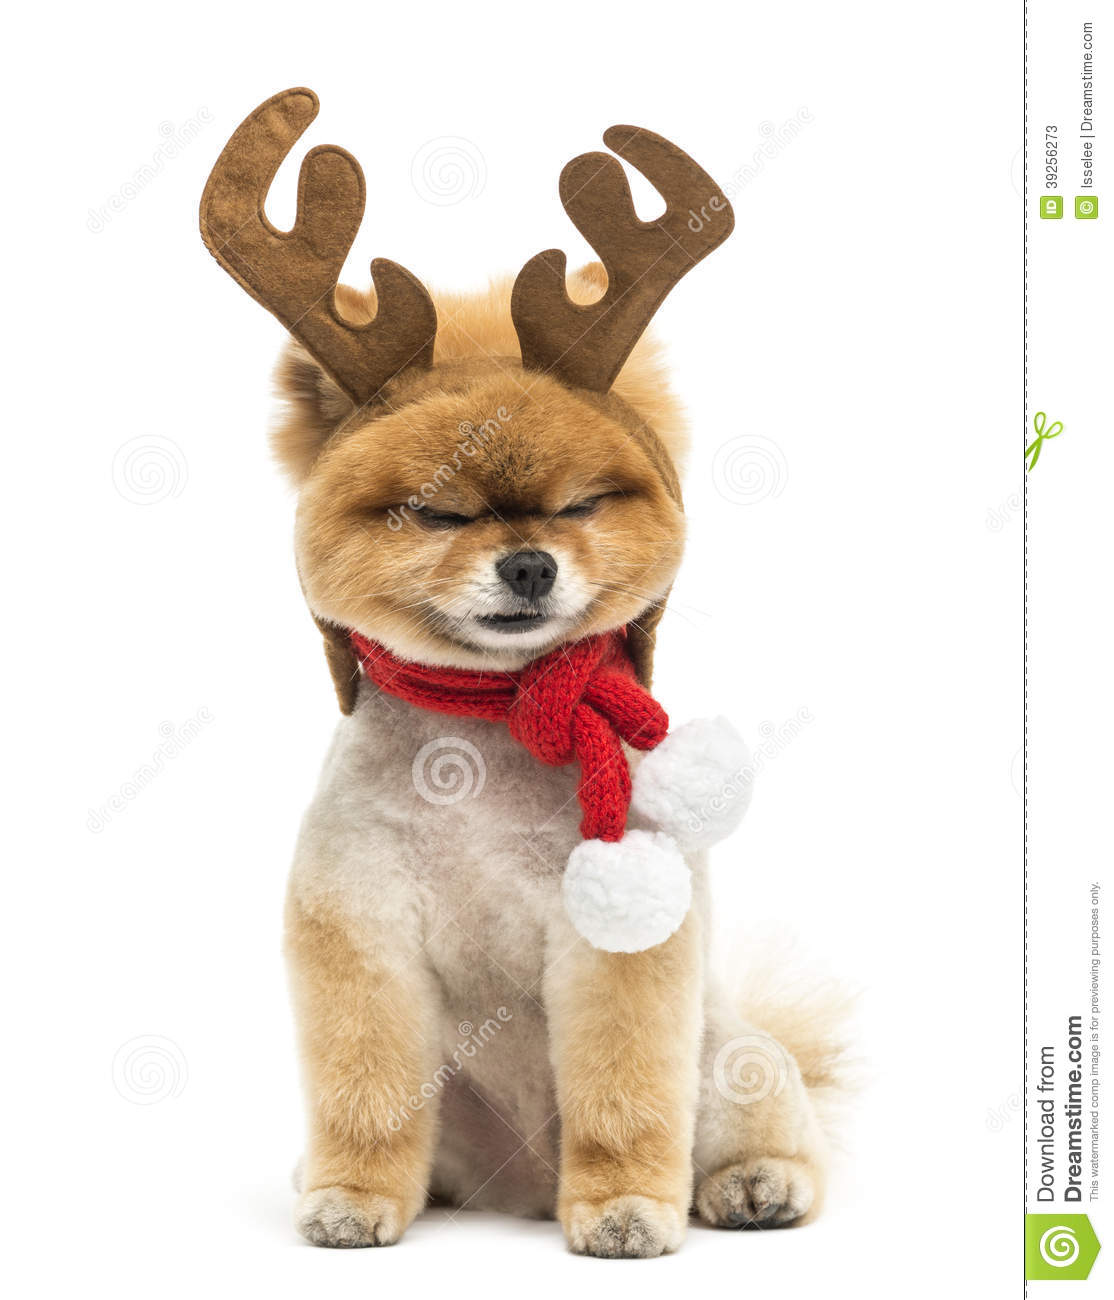 what do reindeer use their antlers for dogs